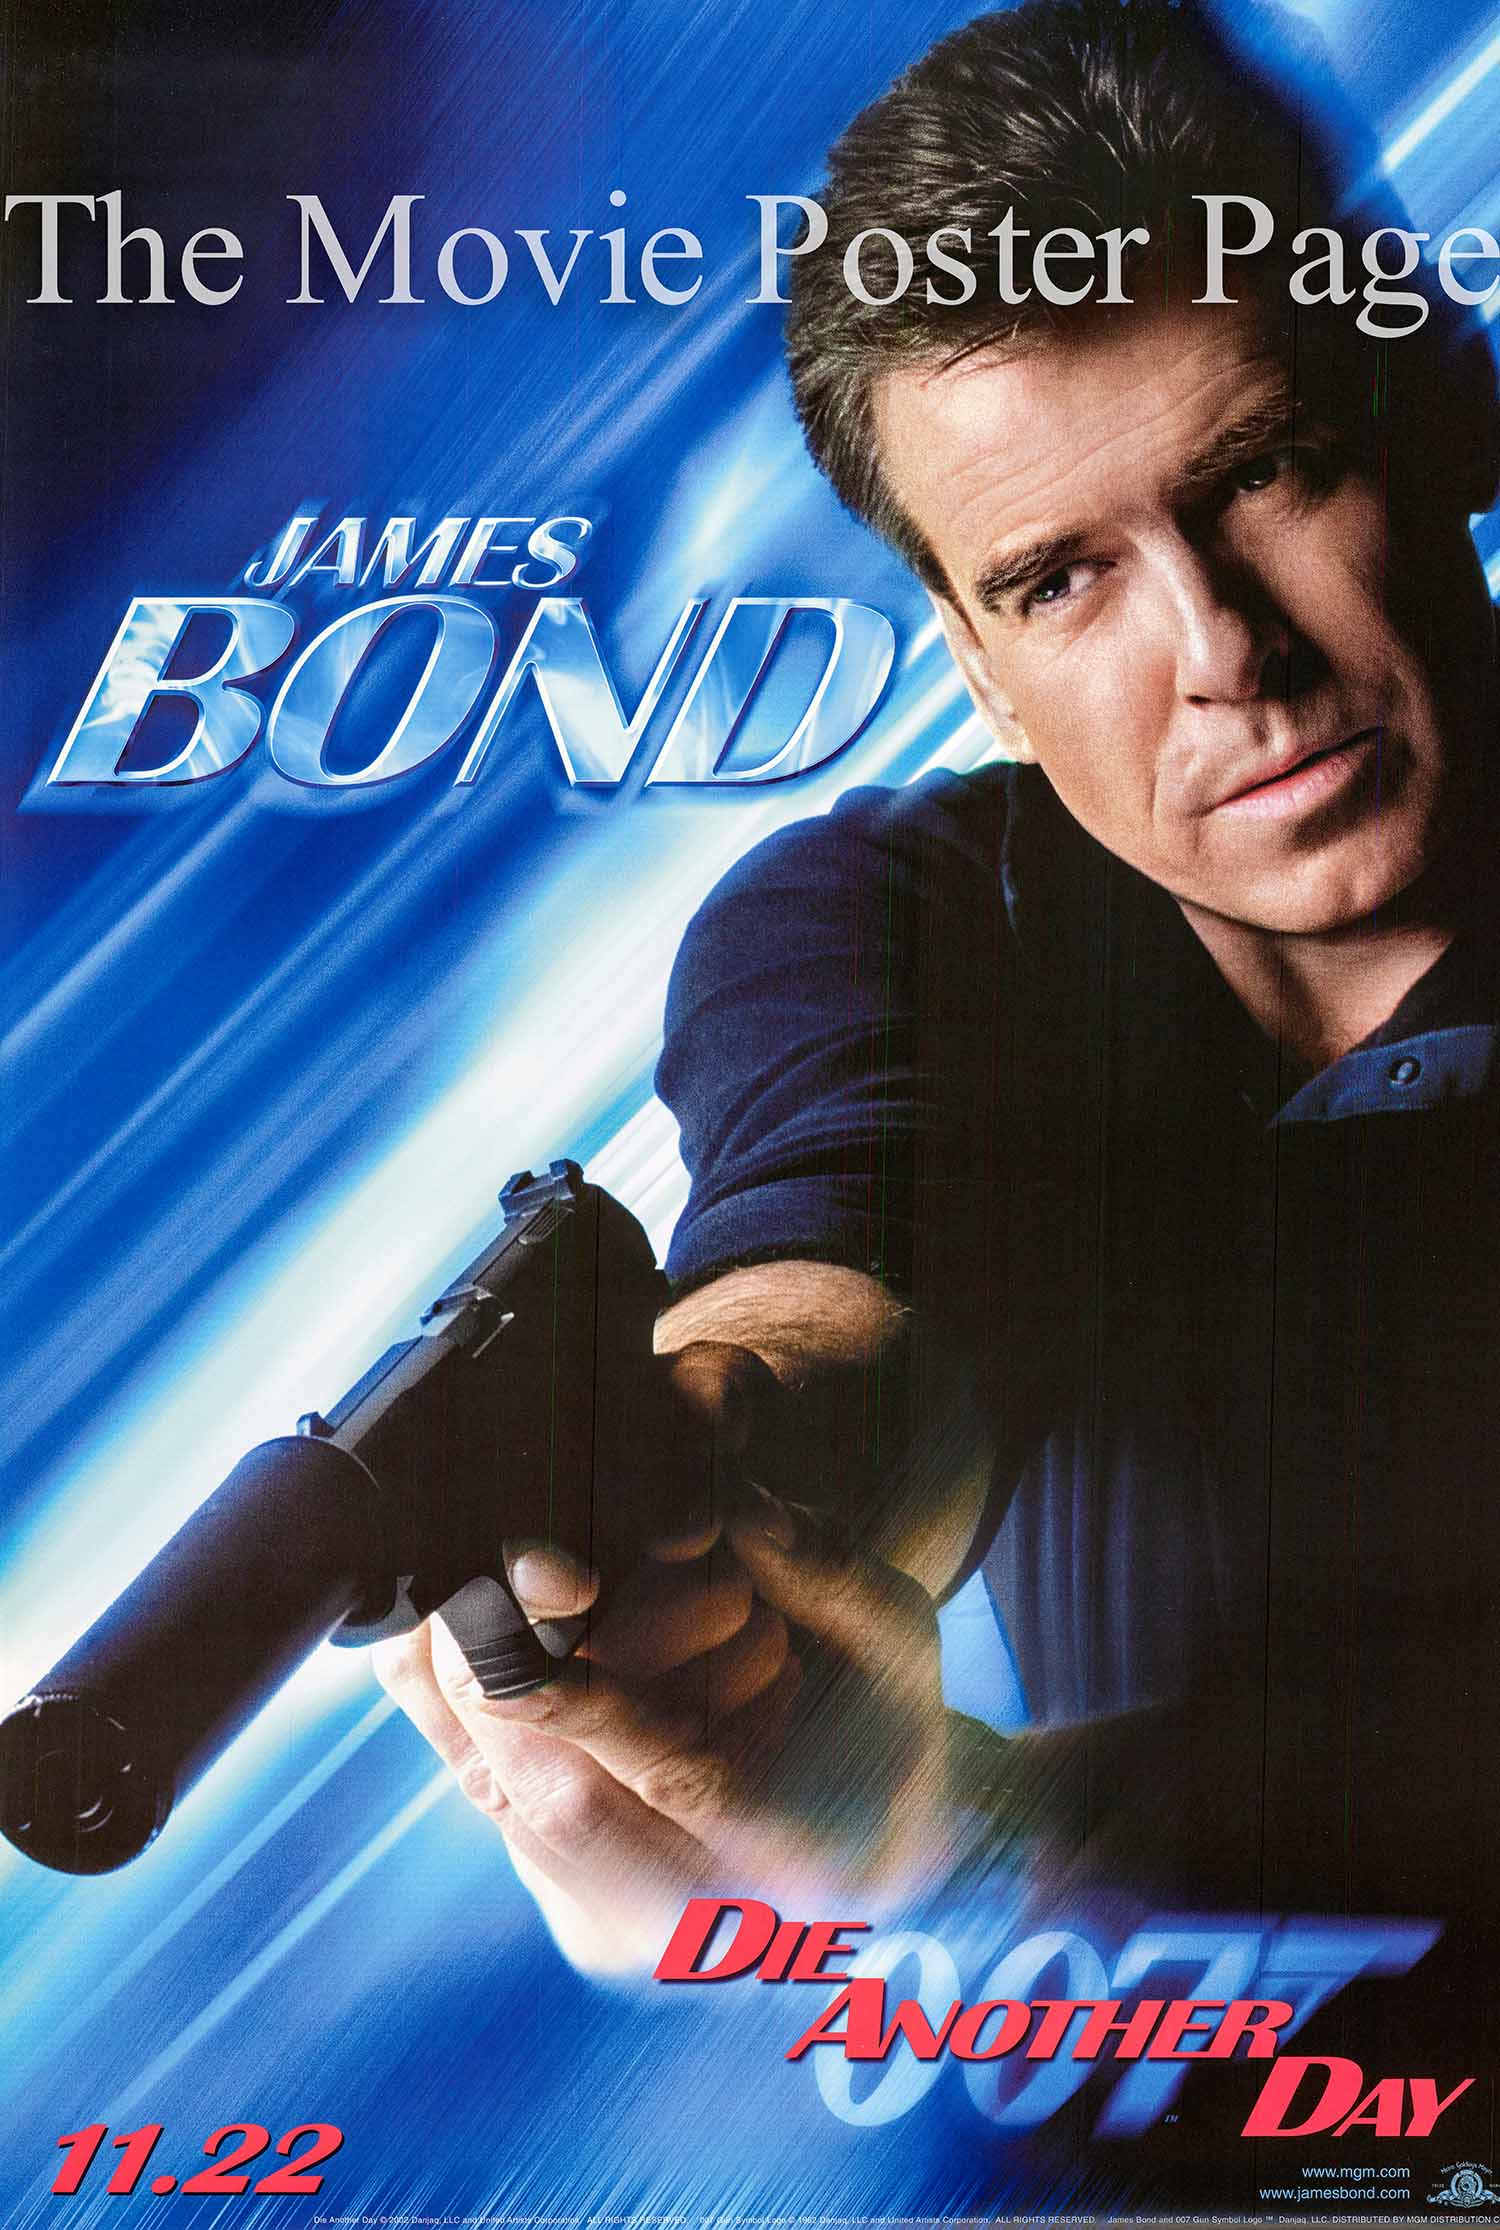 Pictured is a James Bond character advance one-sheet poster made to promote the 2002 Lee Tamahori film Die another Day starring Pierce Brosnan as James Bond.